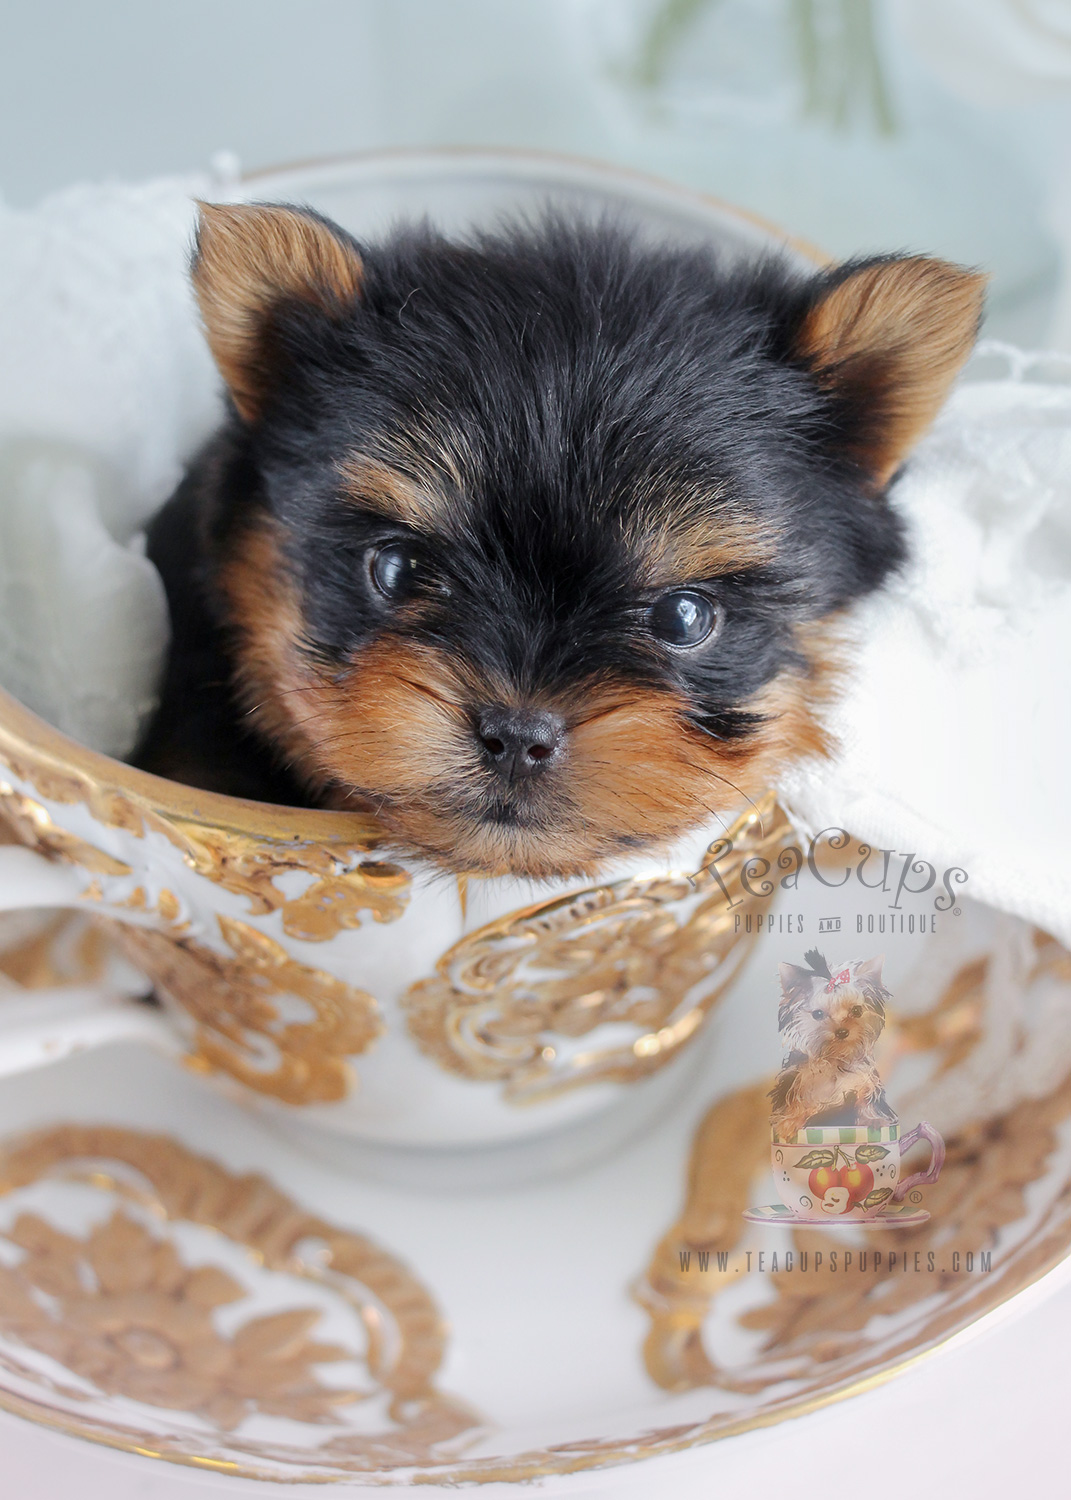 Teacup Yorkie Puppies Teacups Puppies Amp Boutique